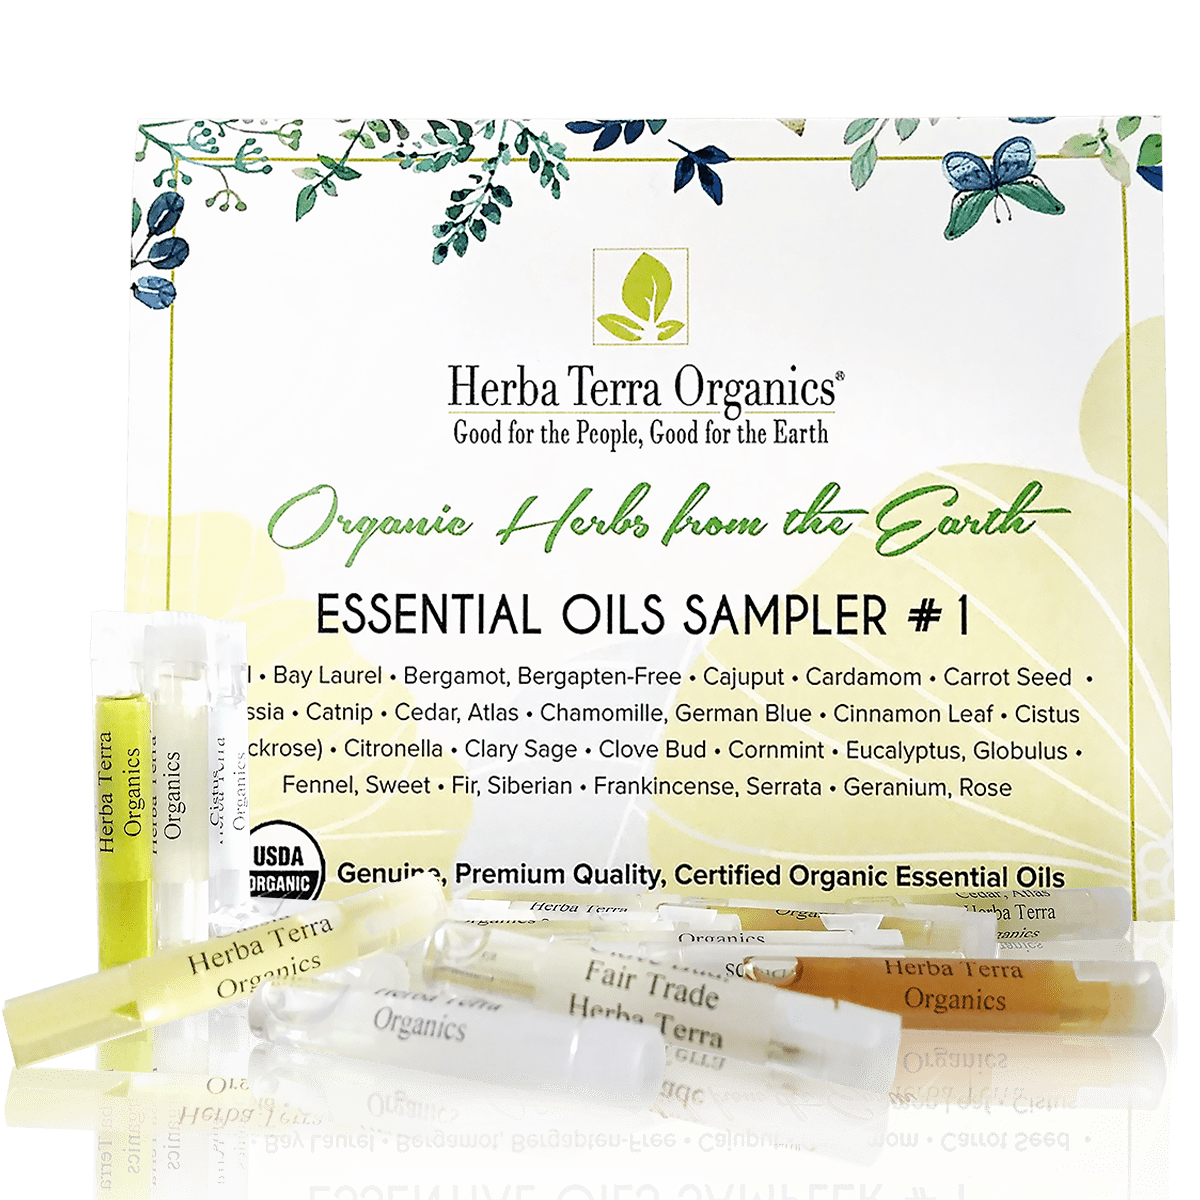 Essential Oils Sampler #1